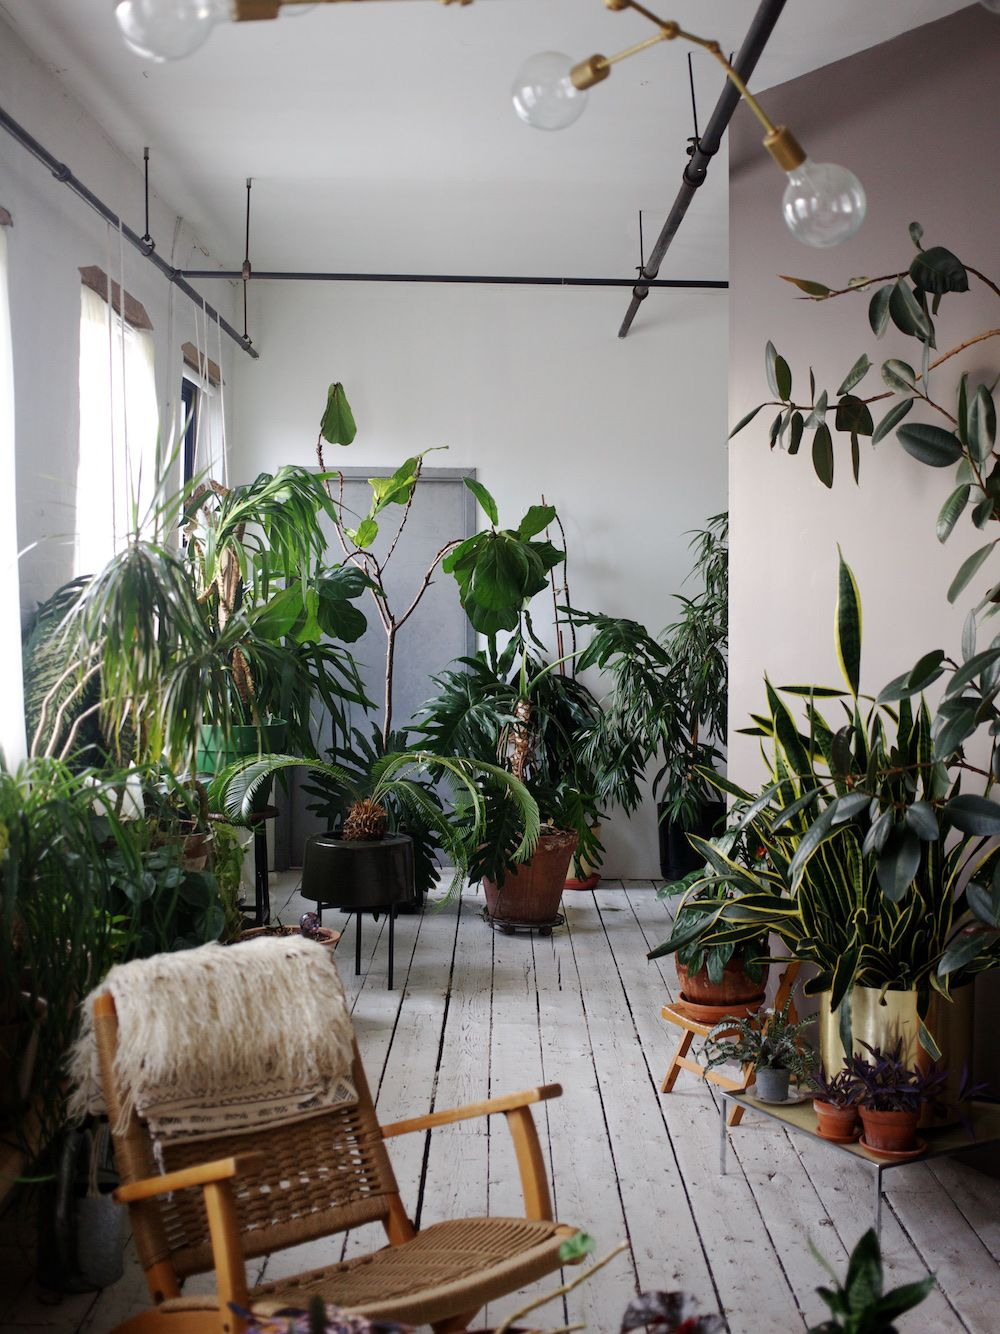 The Accidental Jungle Shabd Simon Alexanders Houseplants In A New York Apartment